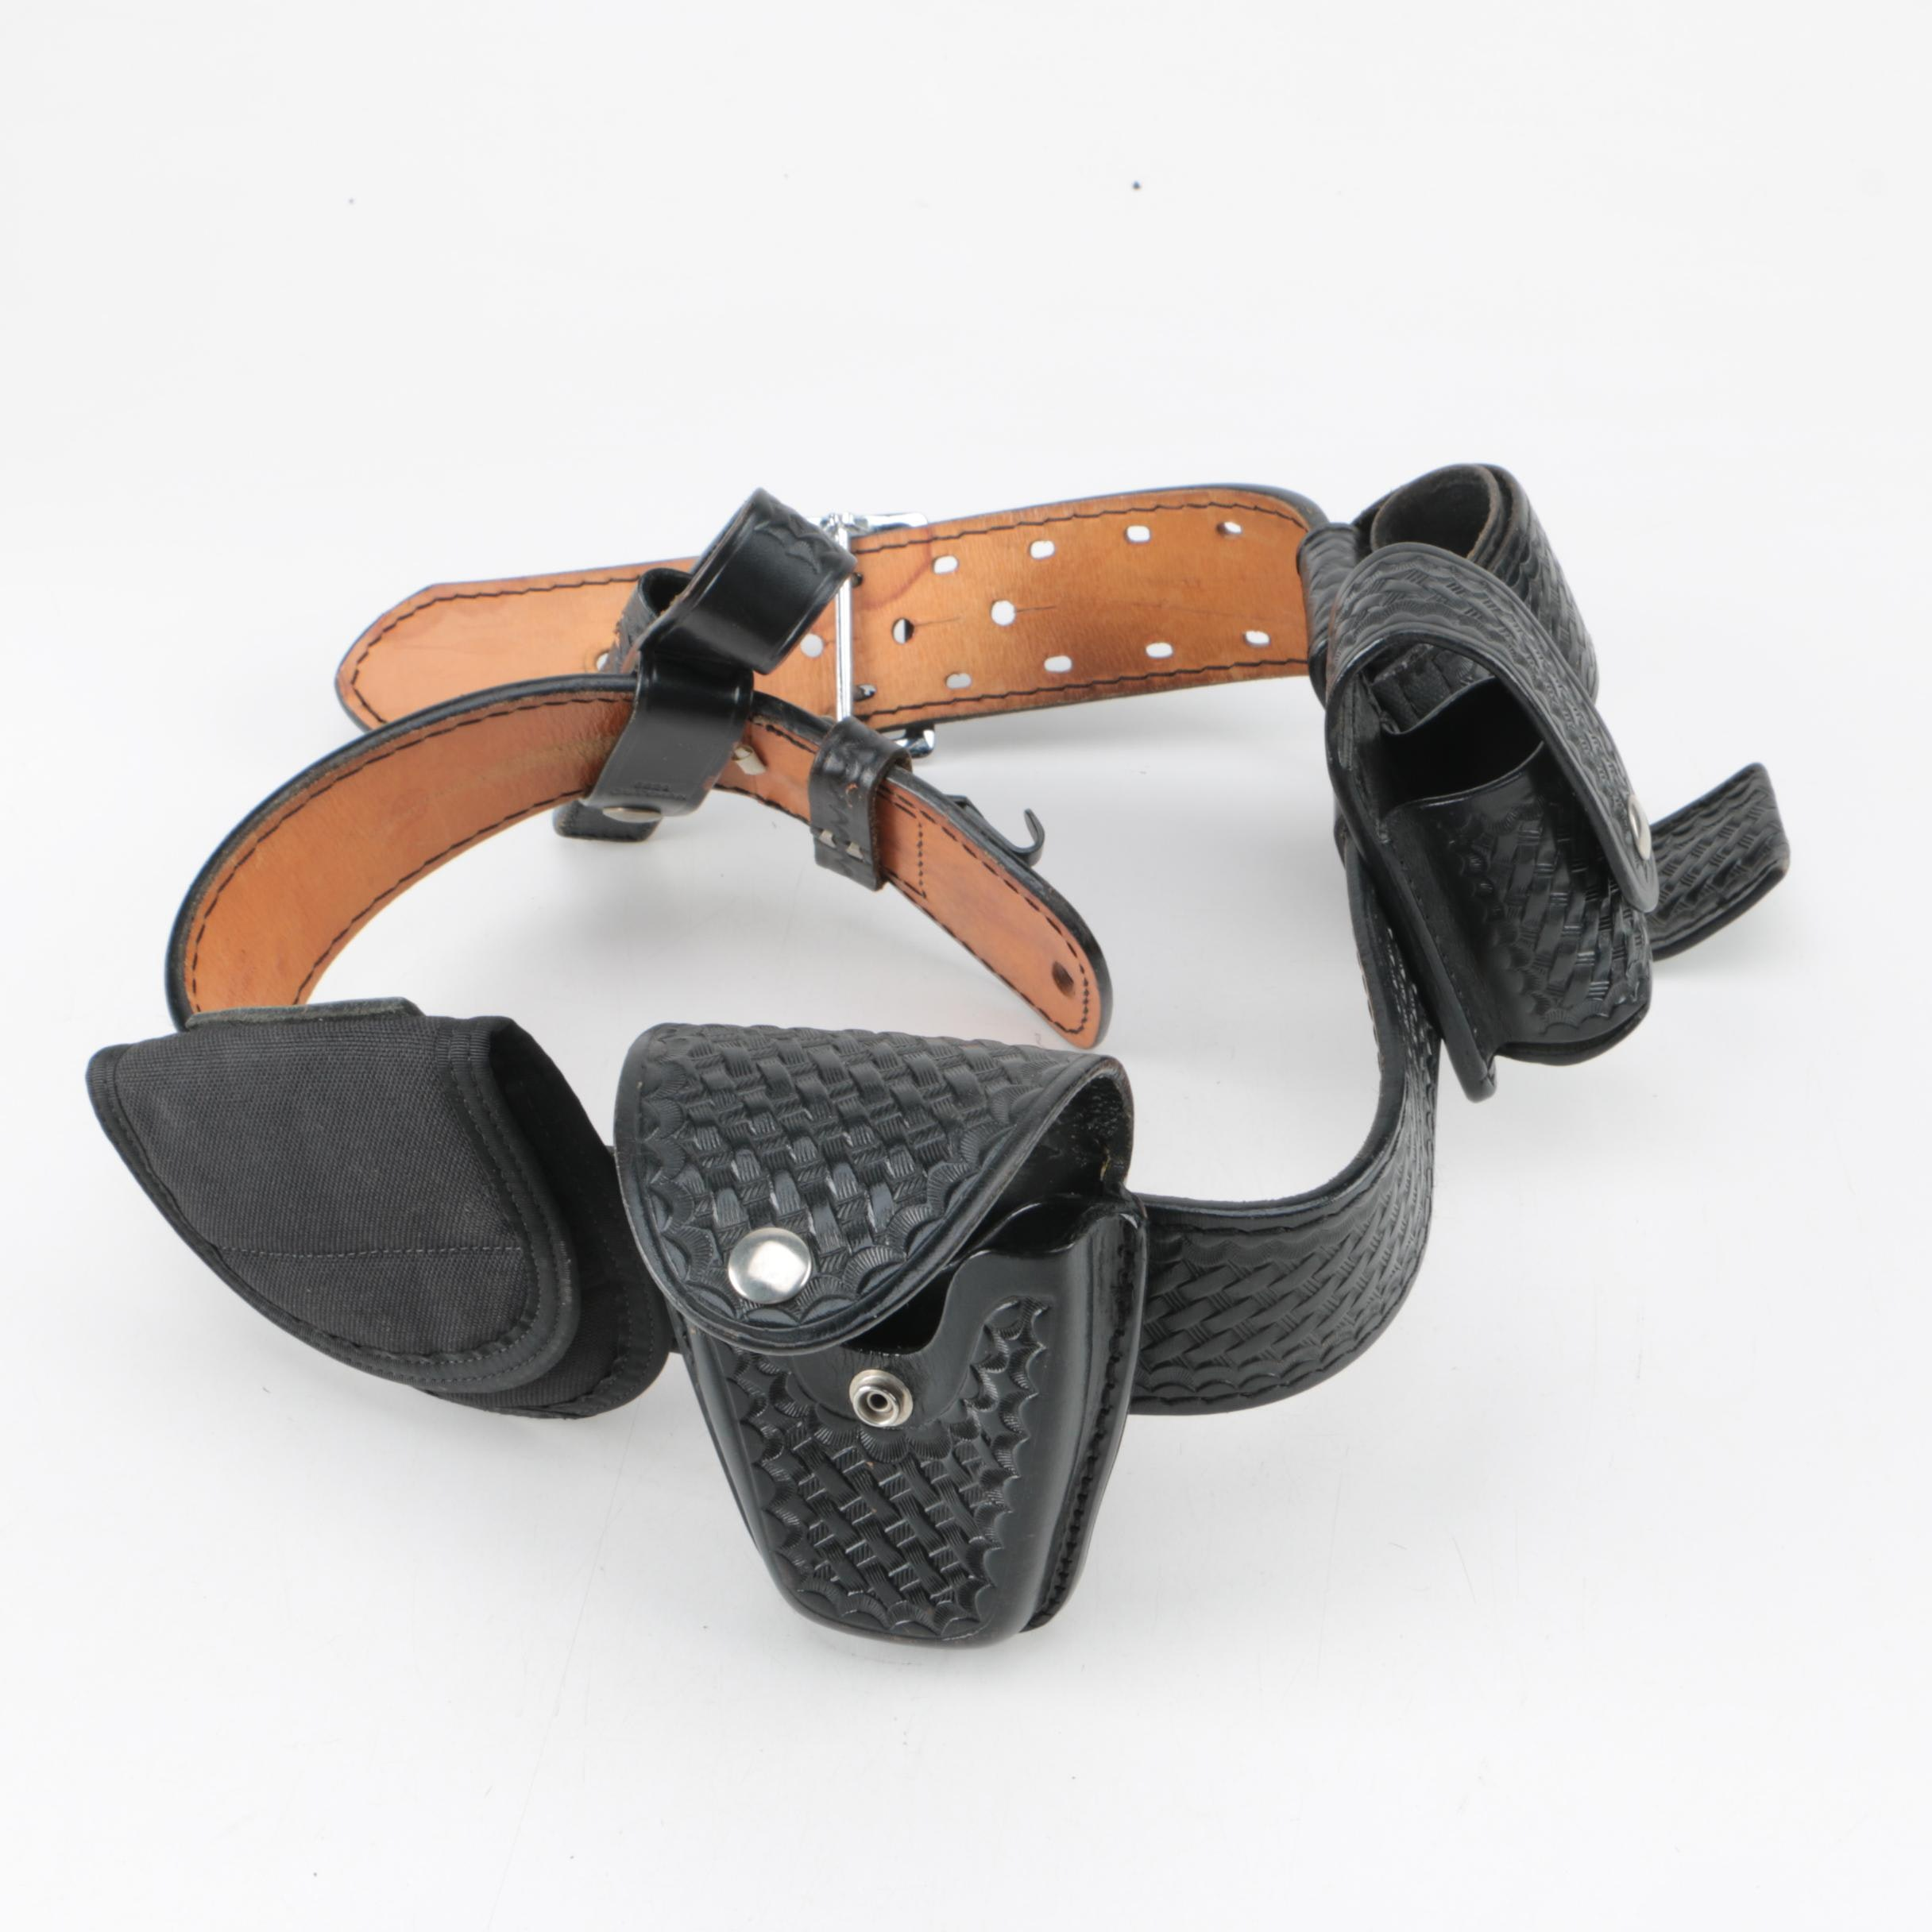 Dutyman Leather Belt with Holster